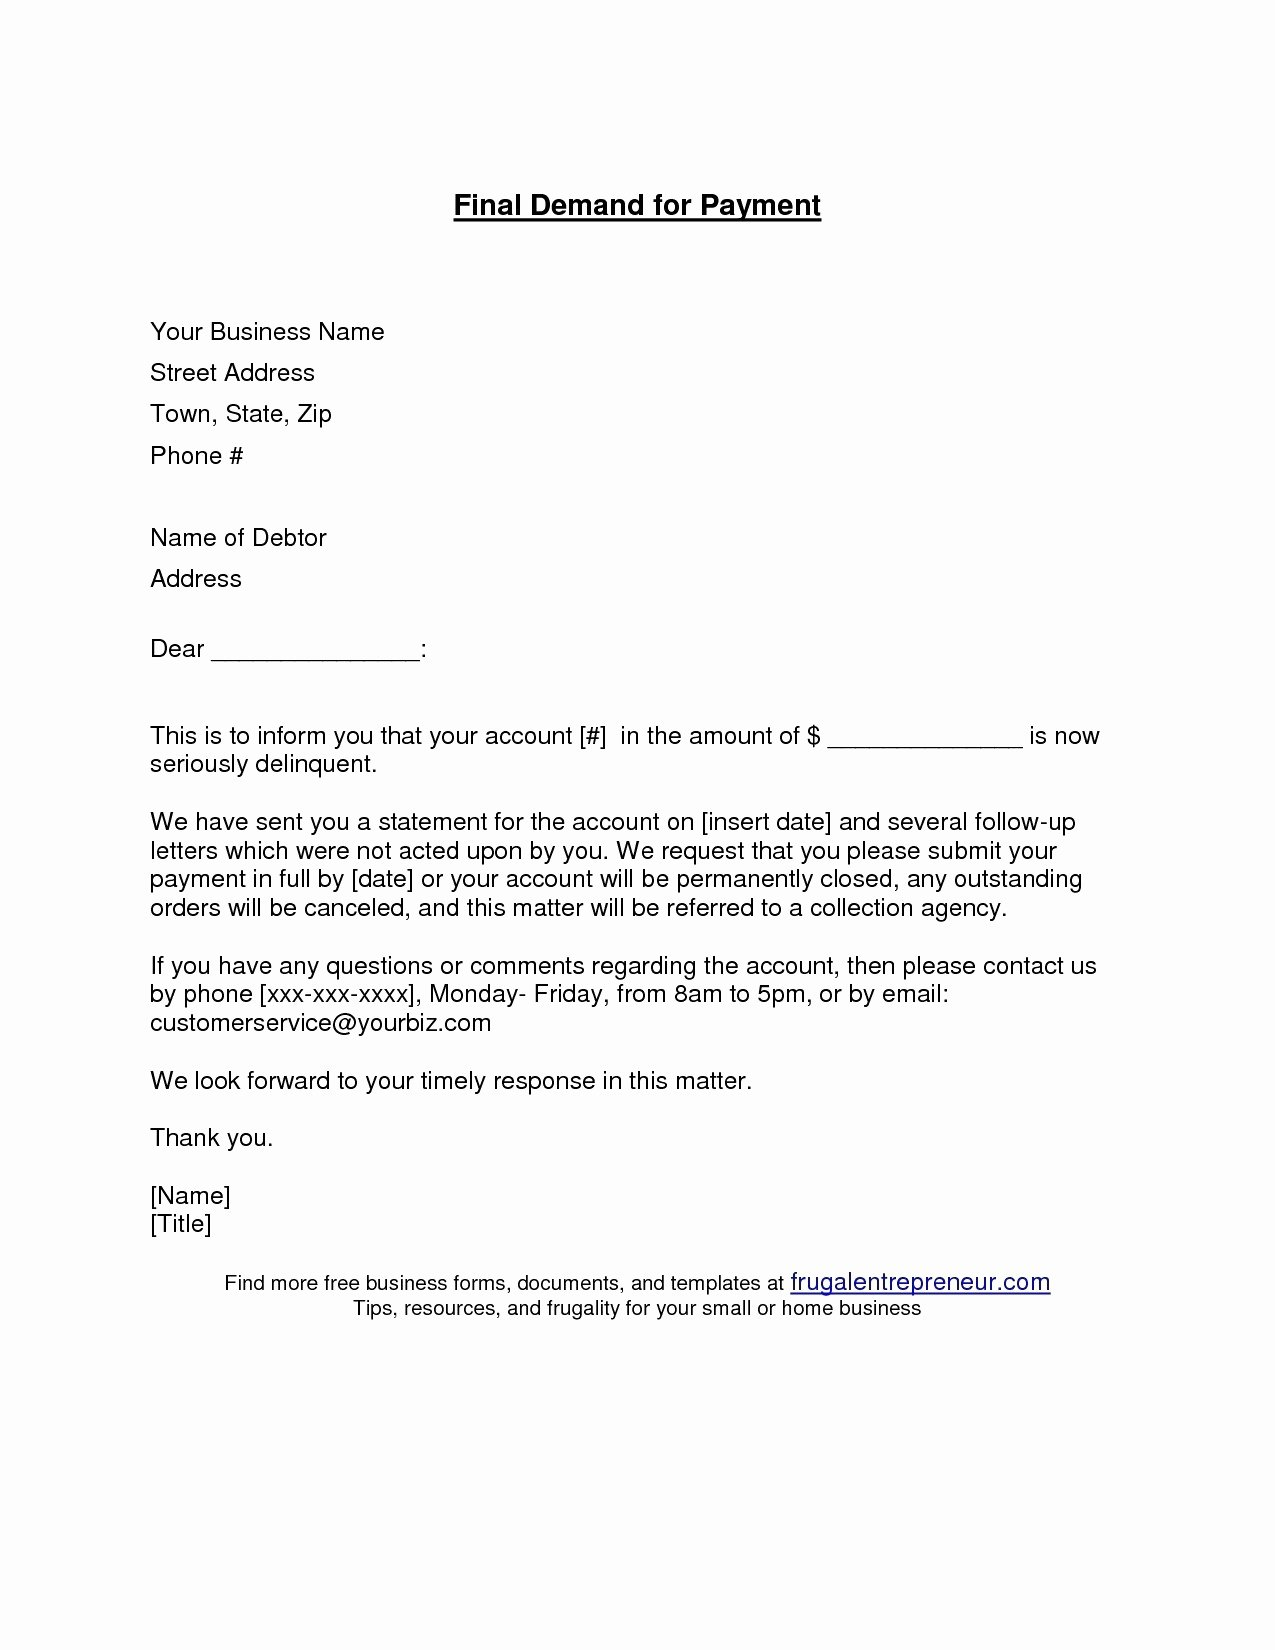 Final Demand for Payment Best Of Final Demand for Payment Letter Template Examples